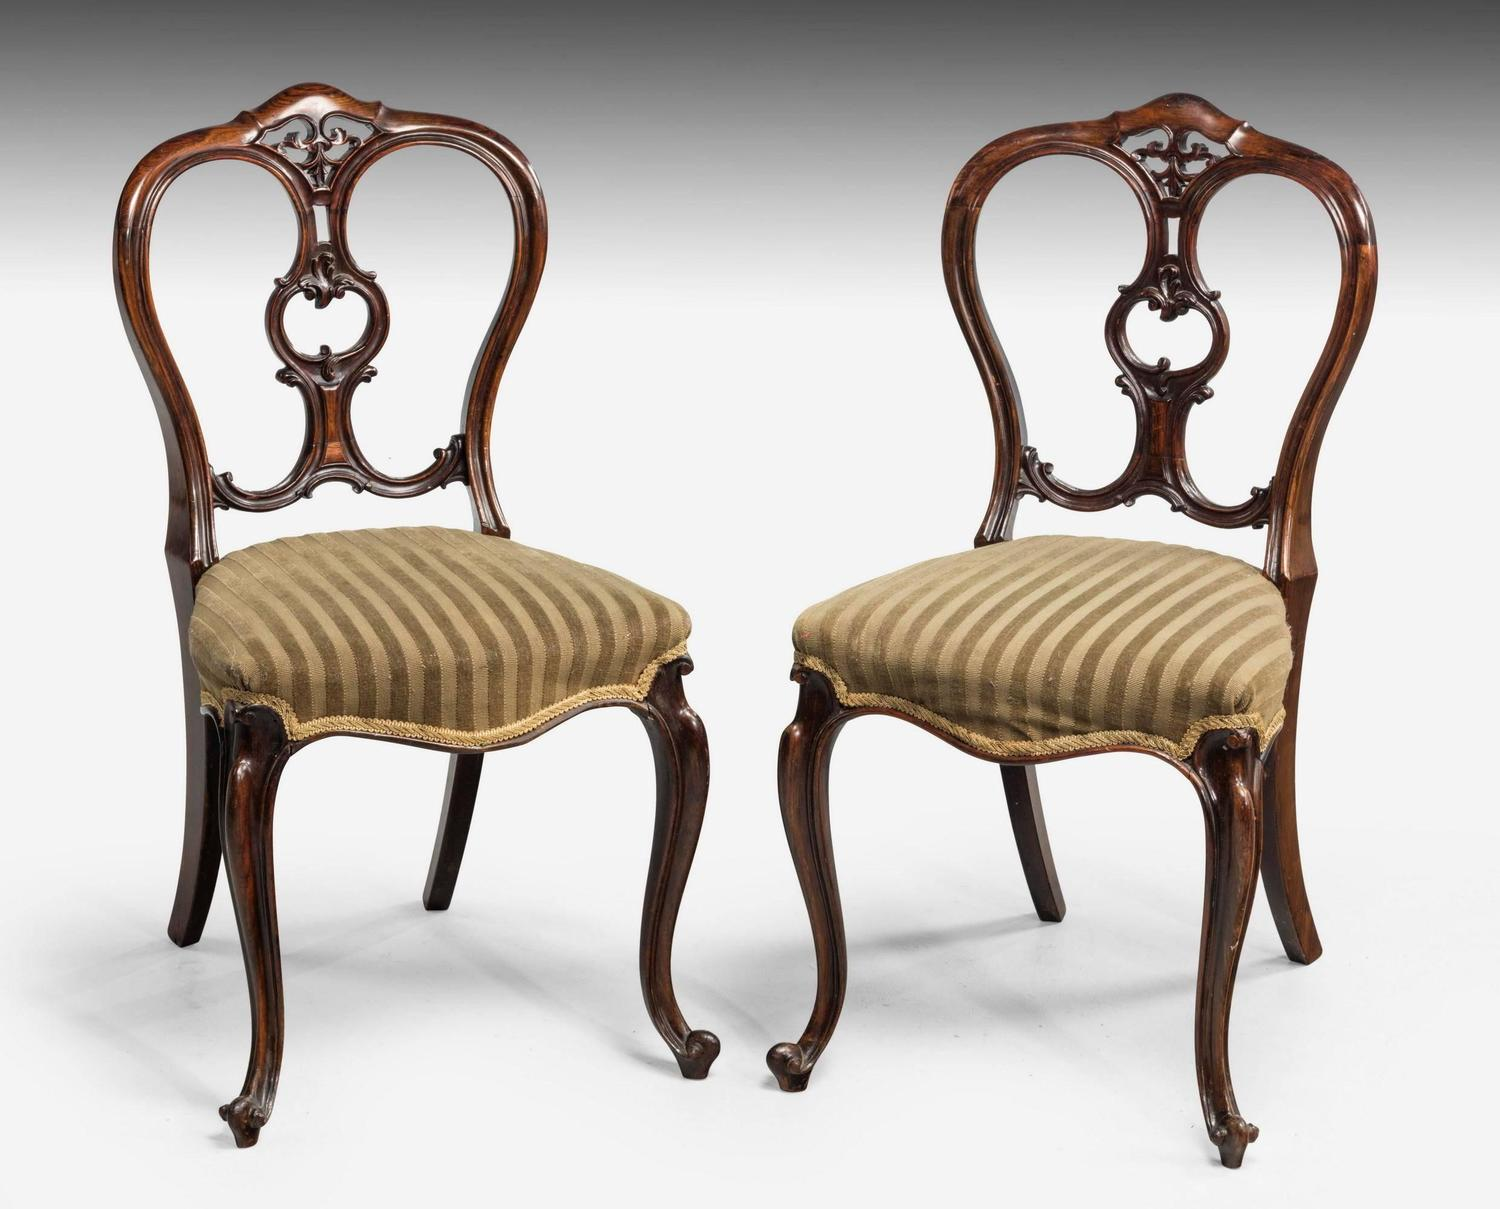 Balloon Chair For Sale Set Of Six Mid Victorian Rosewood Balloon Back Chairs For